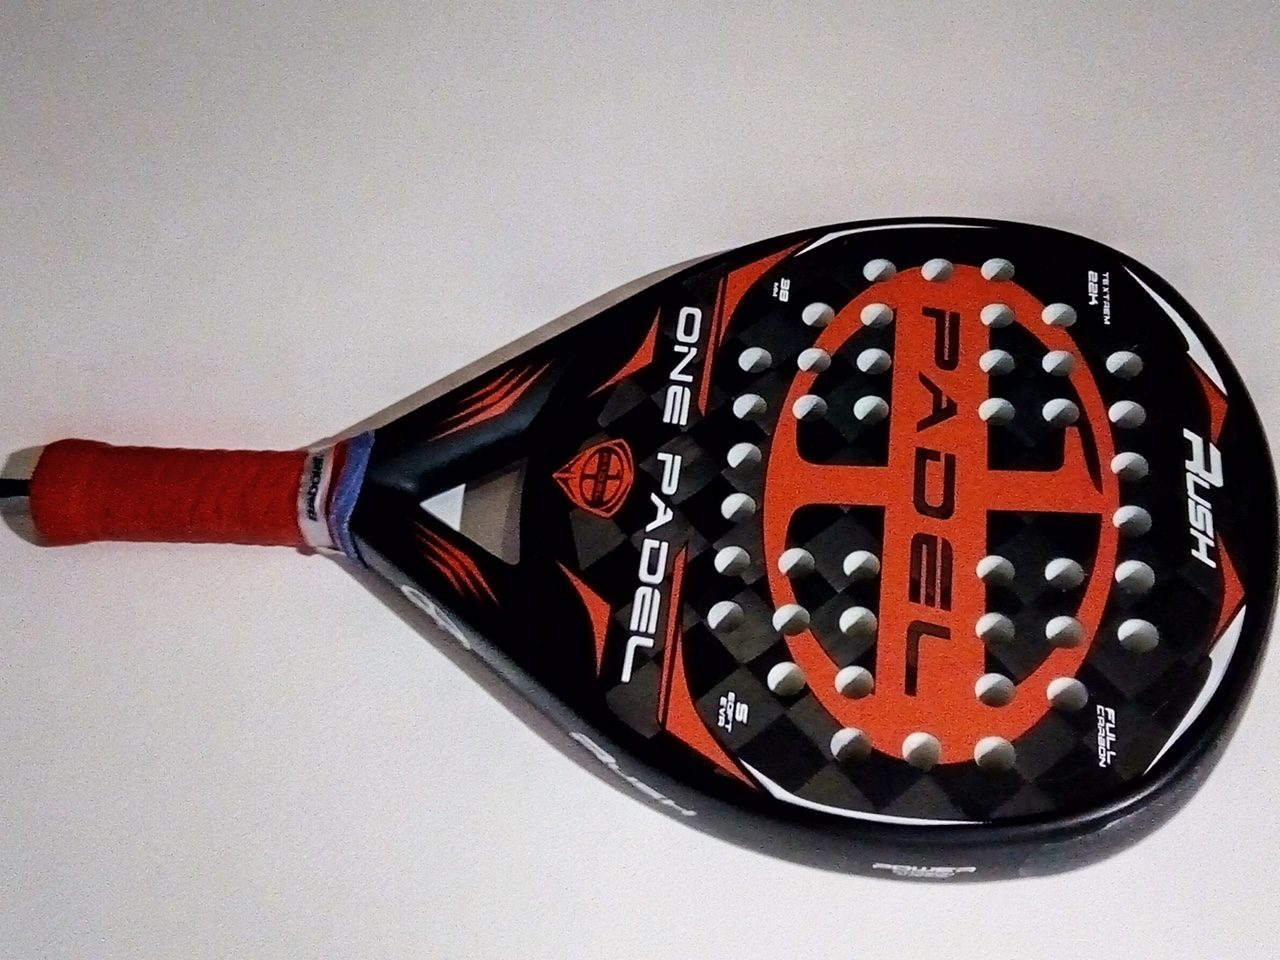 one padel rush|rush one padel|one padel rush|rush one padel